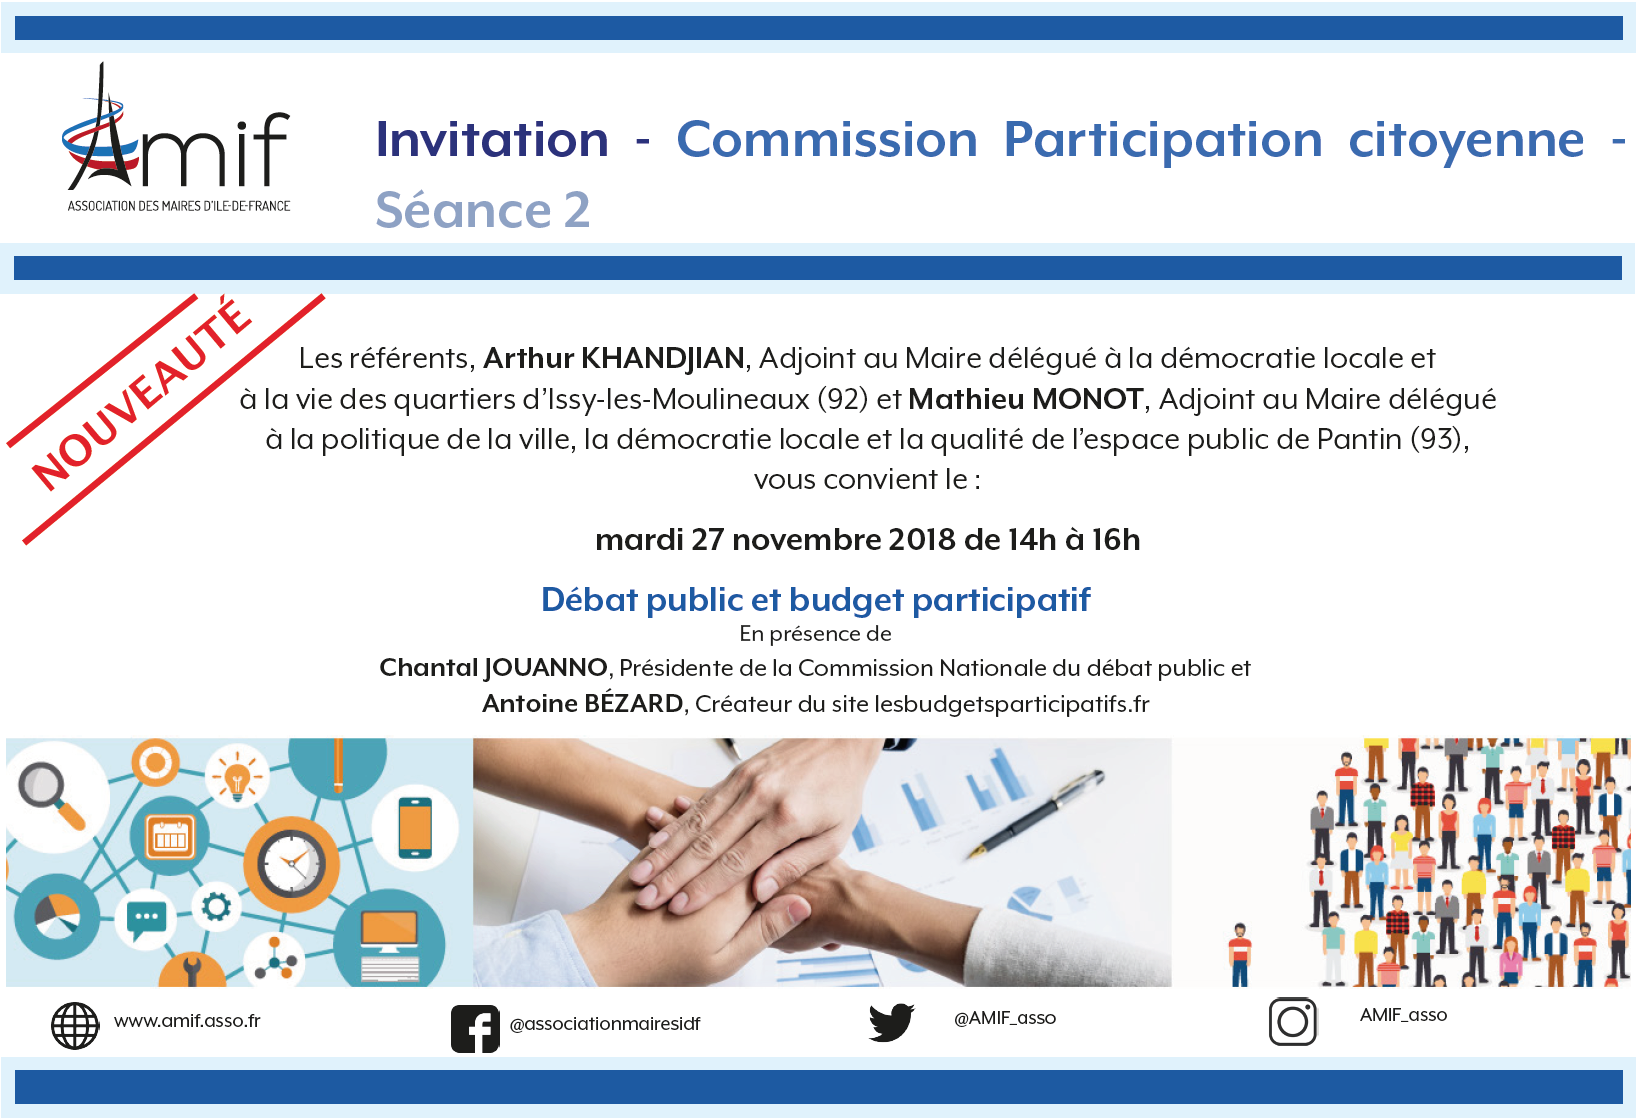 CommissionParticipationCitoyenneSeance227novembre2018v6